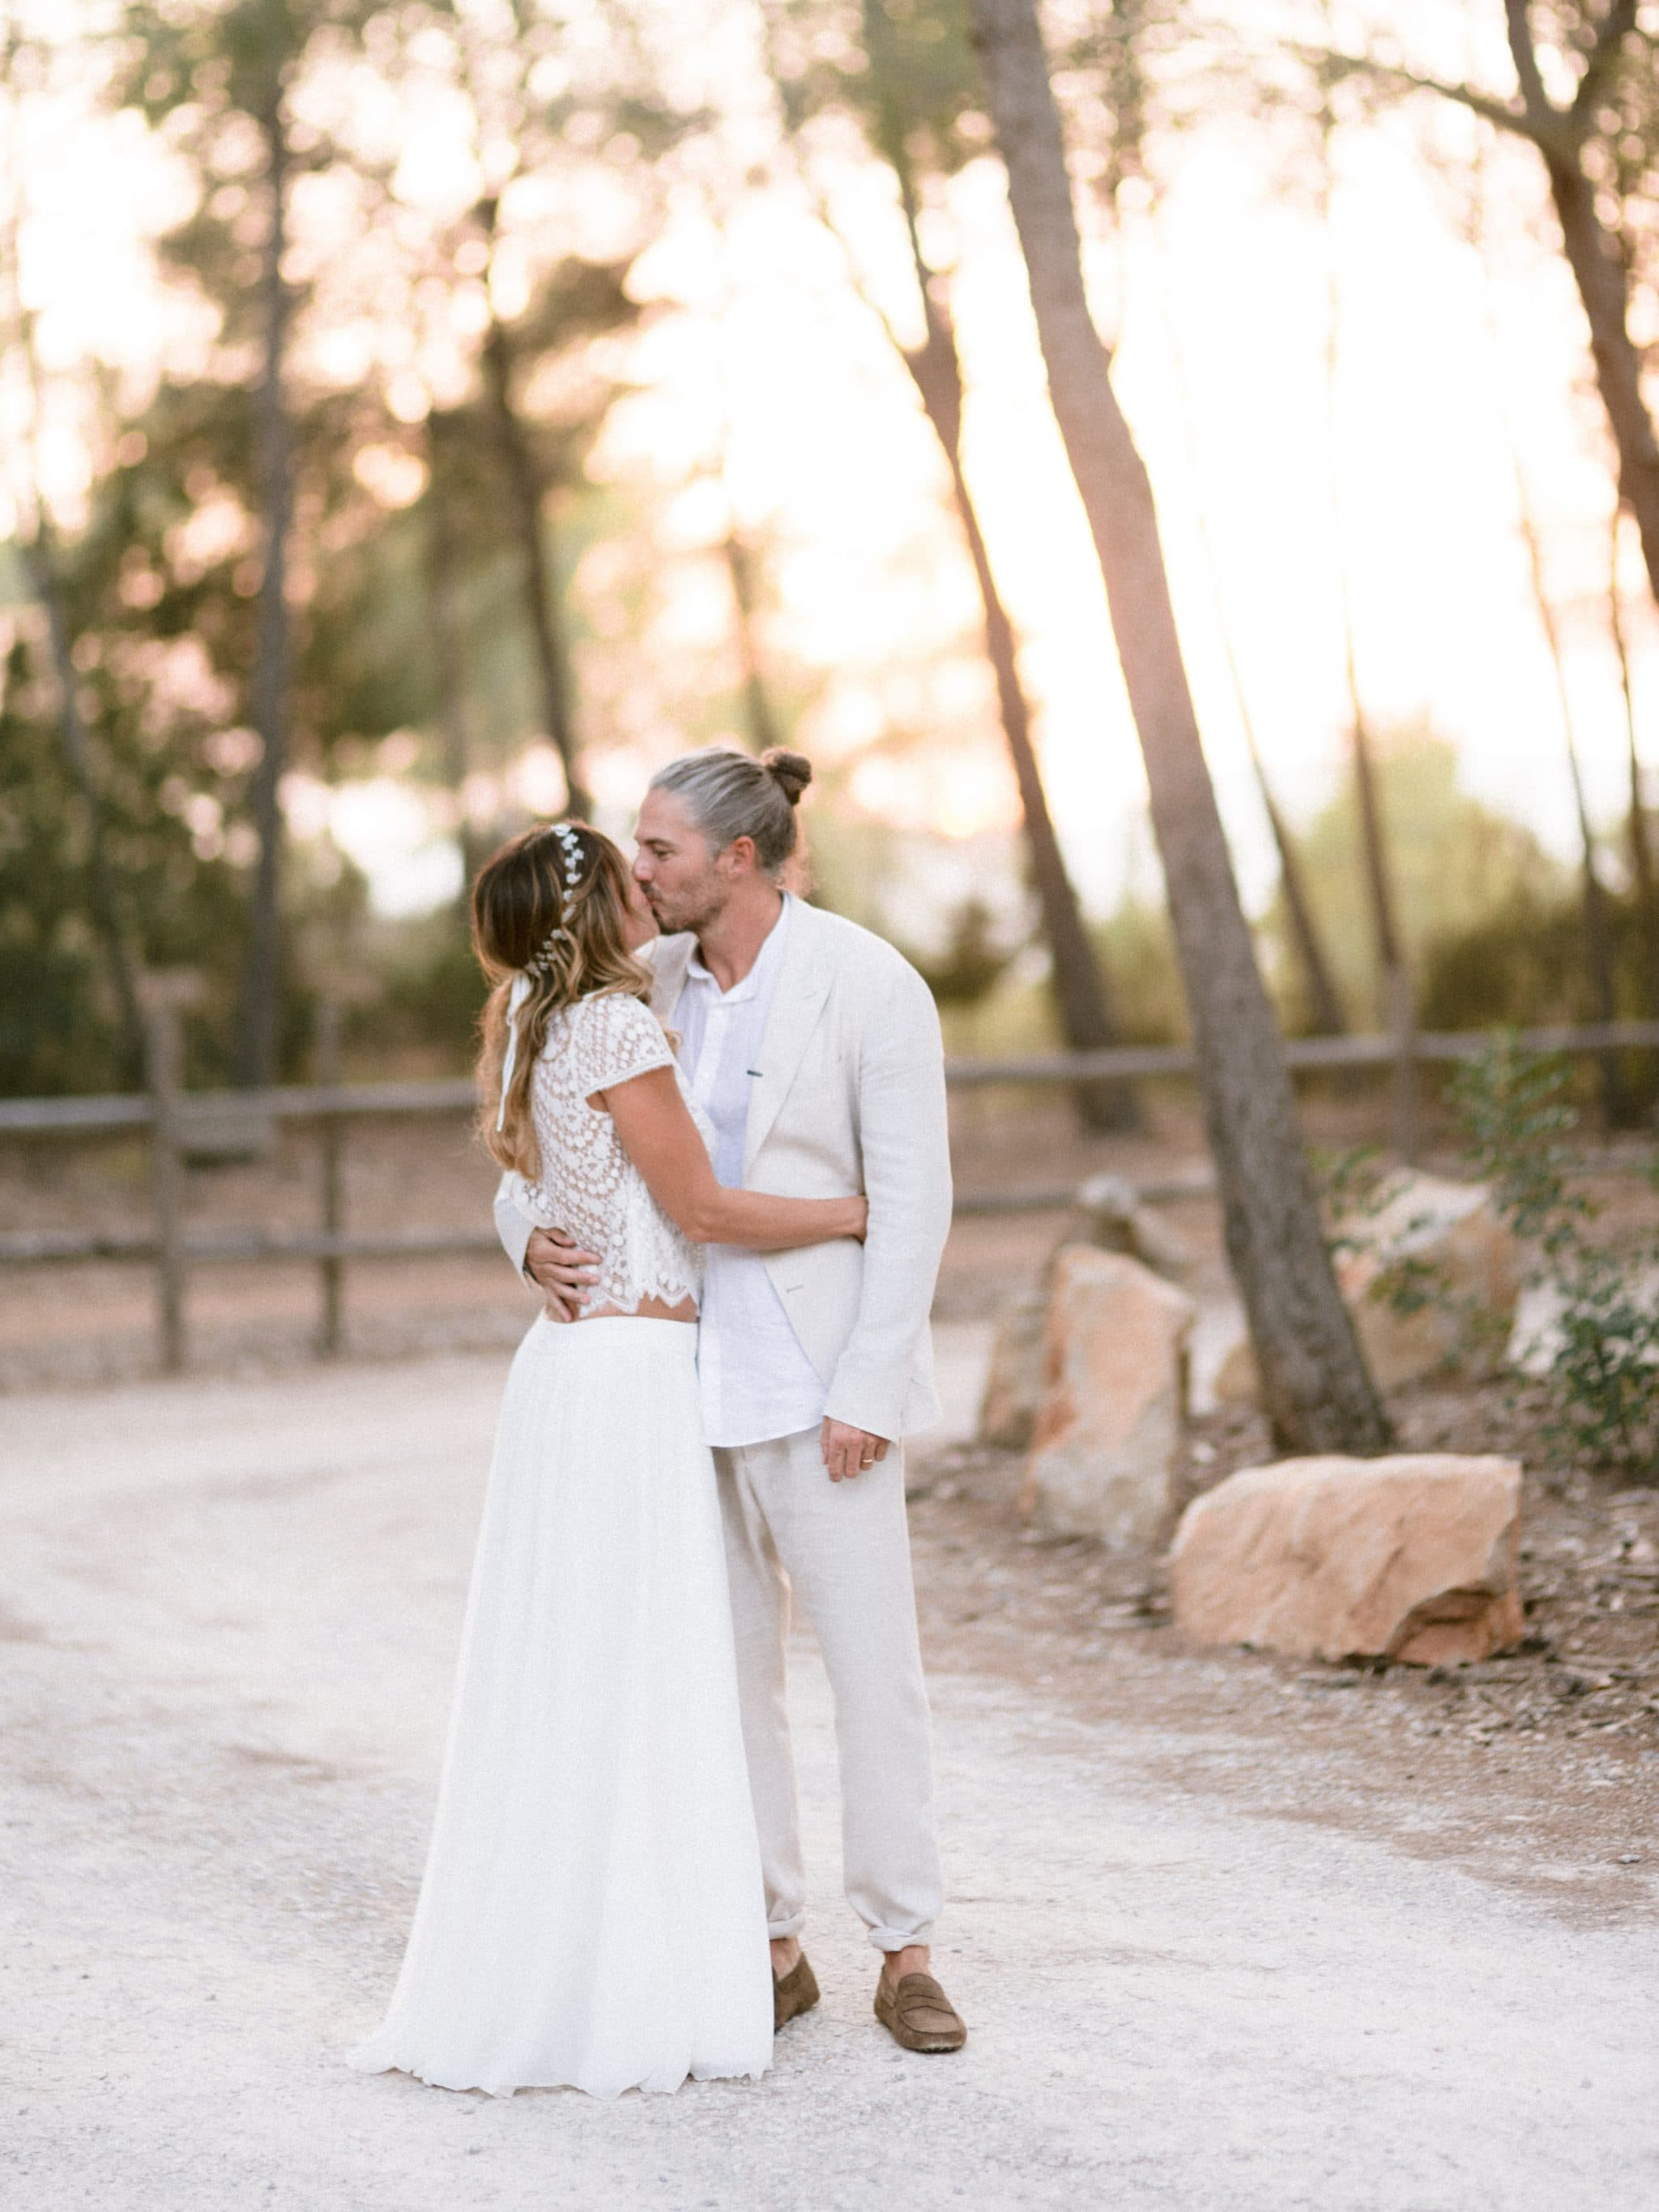 Wedding La Granja Ibiza, Youri Claessens